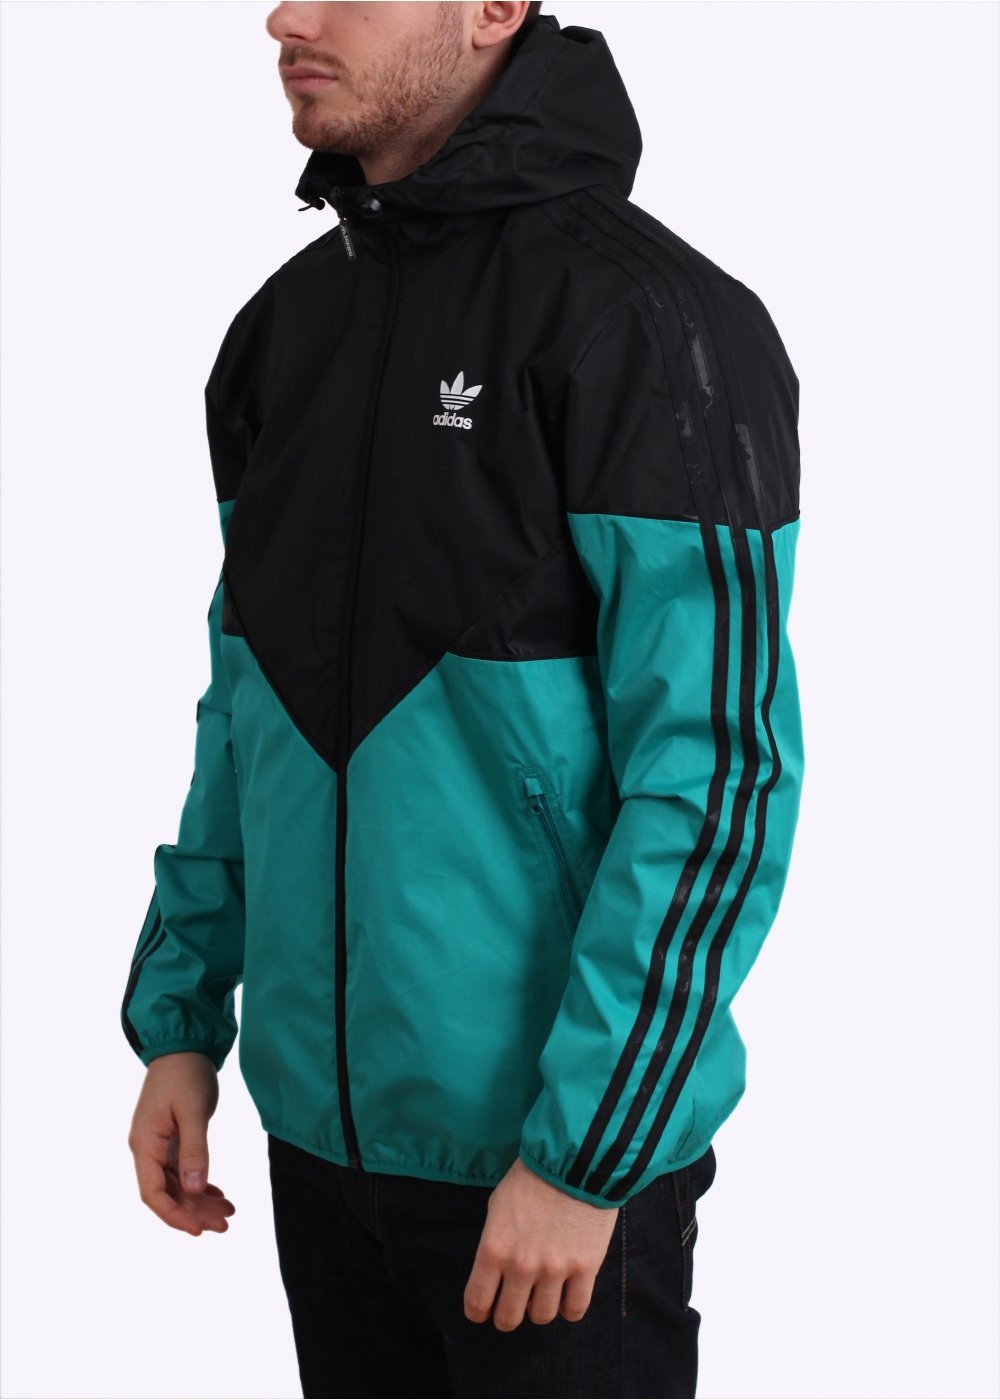 b330bc94b adidas Originals Colorado Wind Breaker - Green